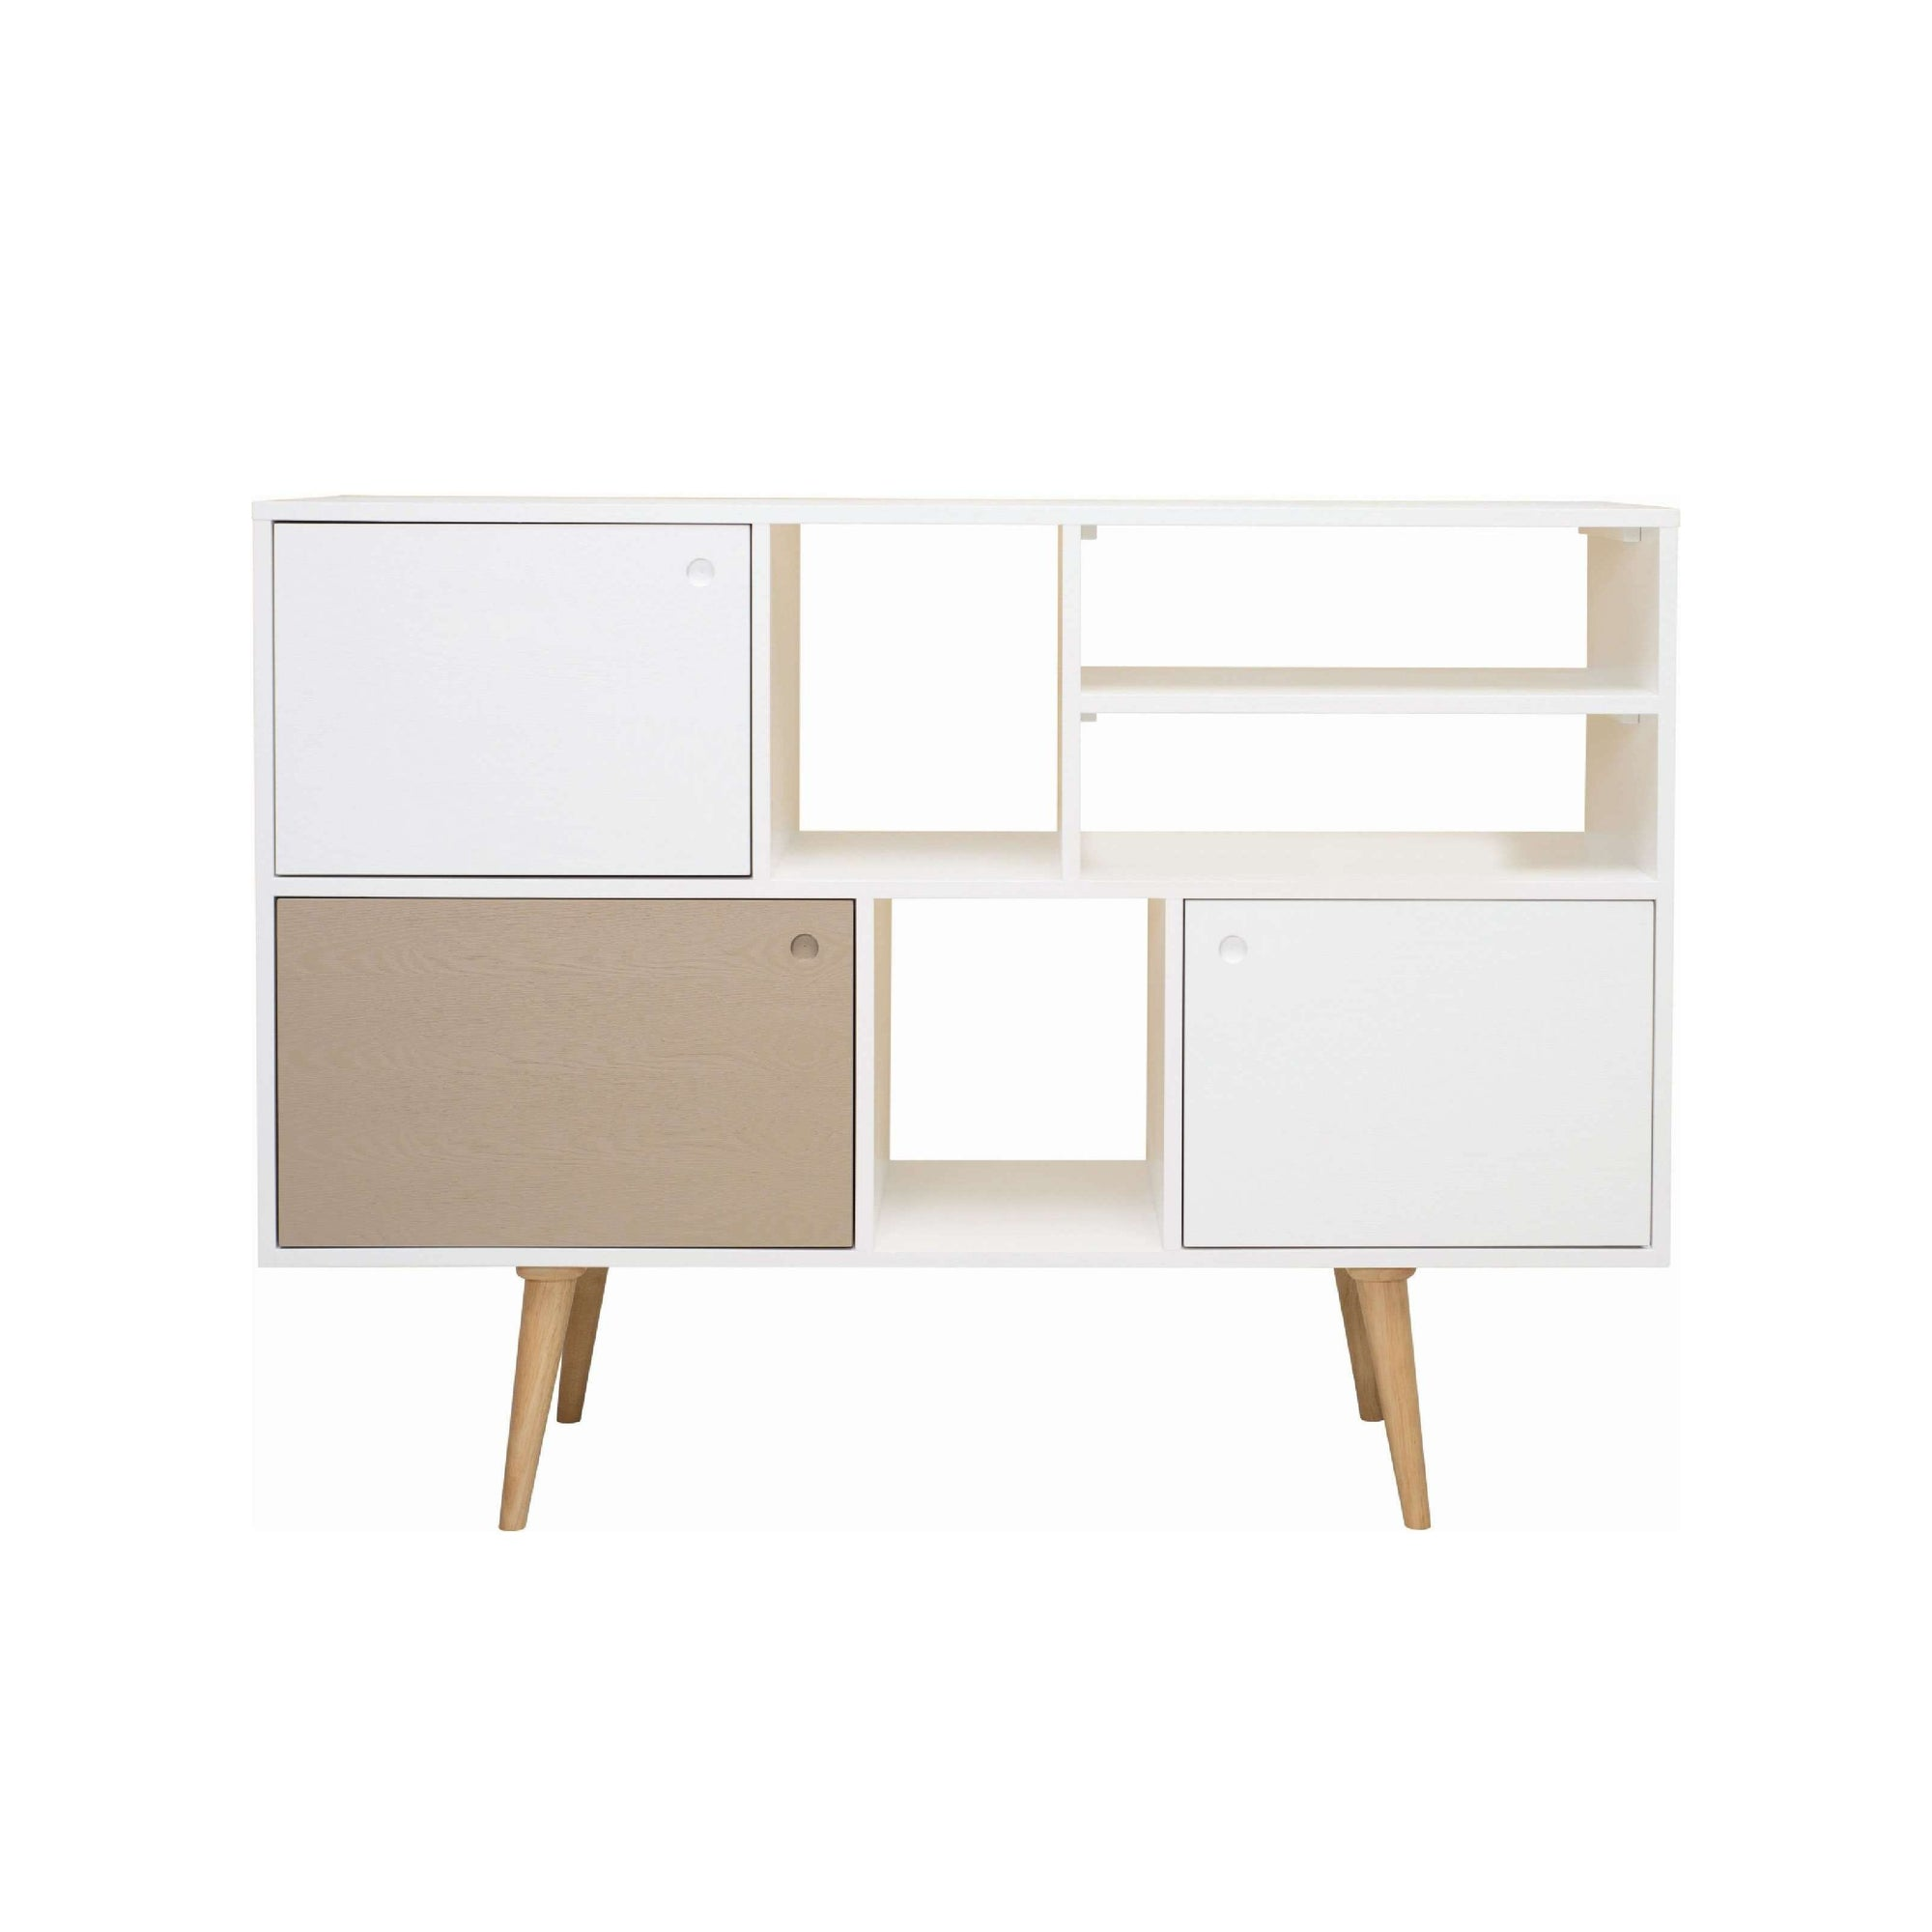 LOCKE Tall Sideboard On White Lacquered Body, White Lacquered And Taupe Grey Colour Door